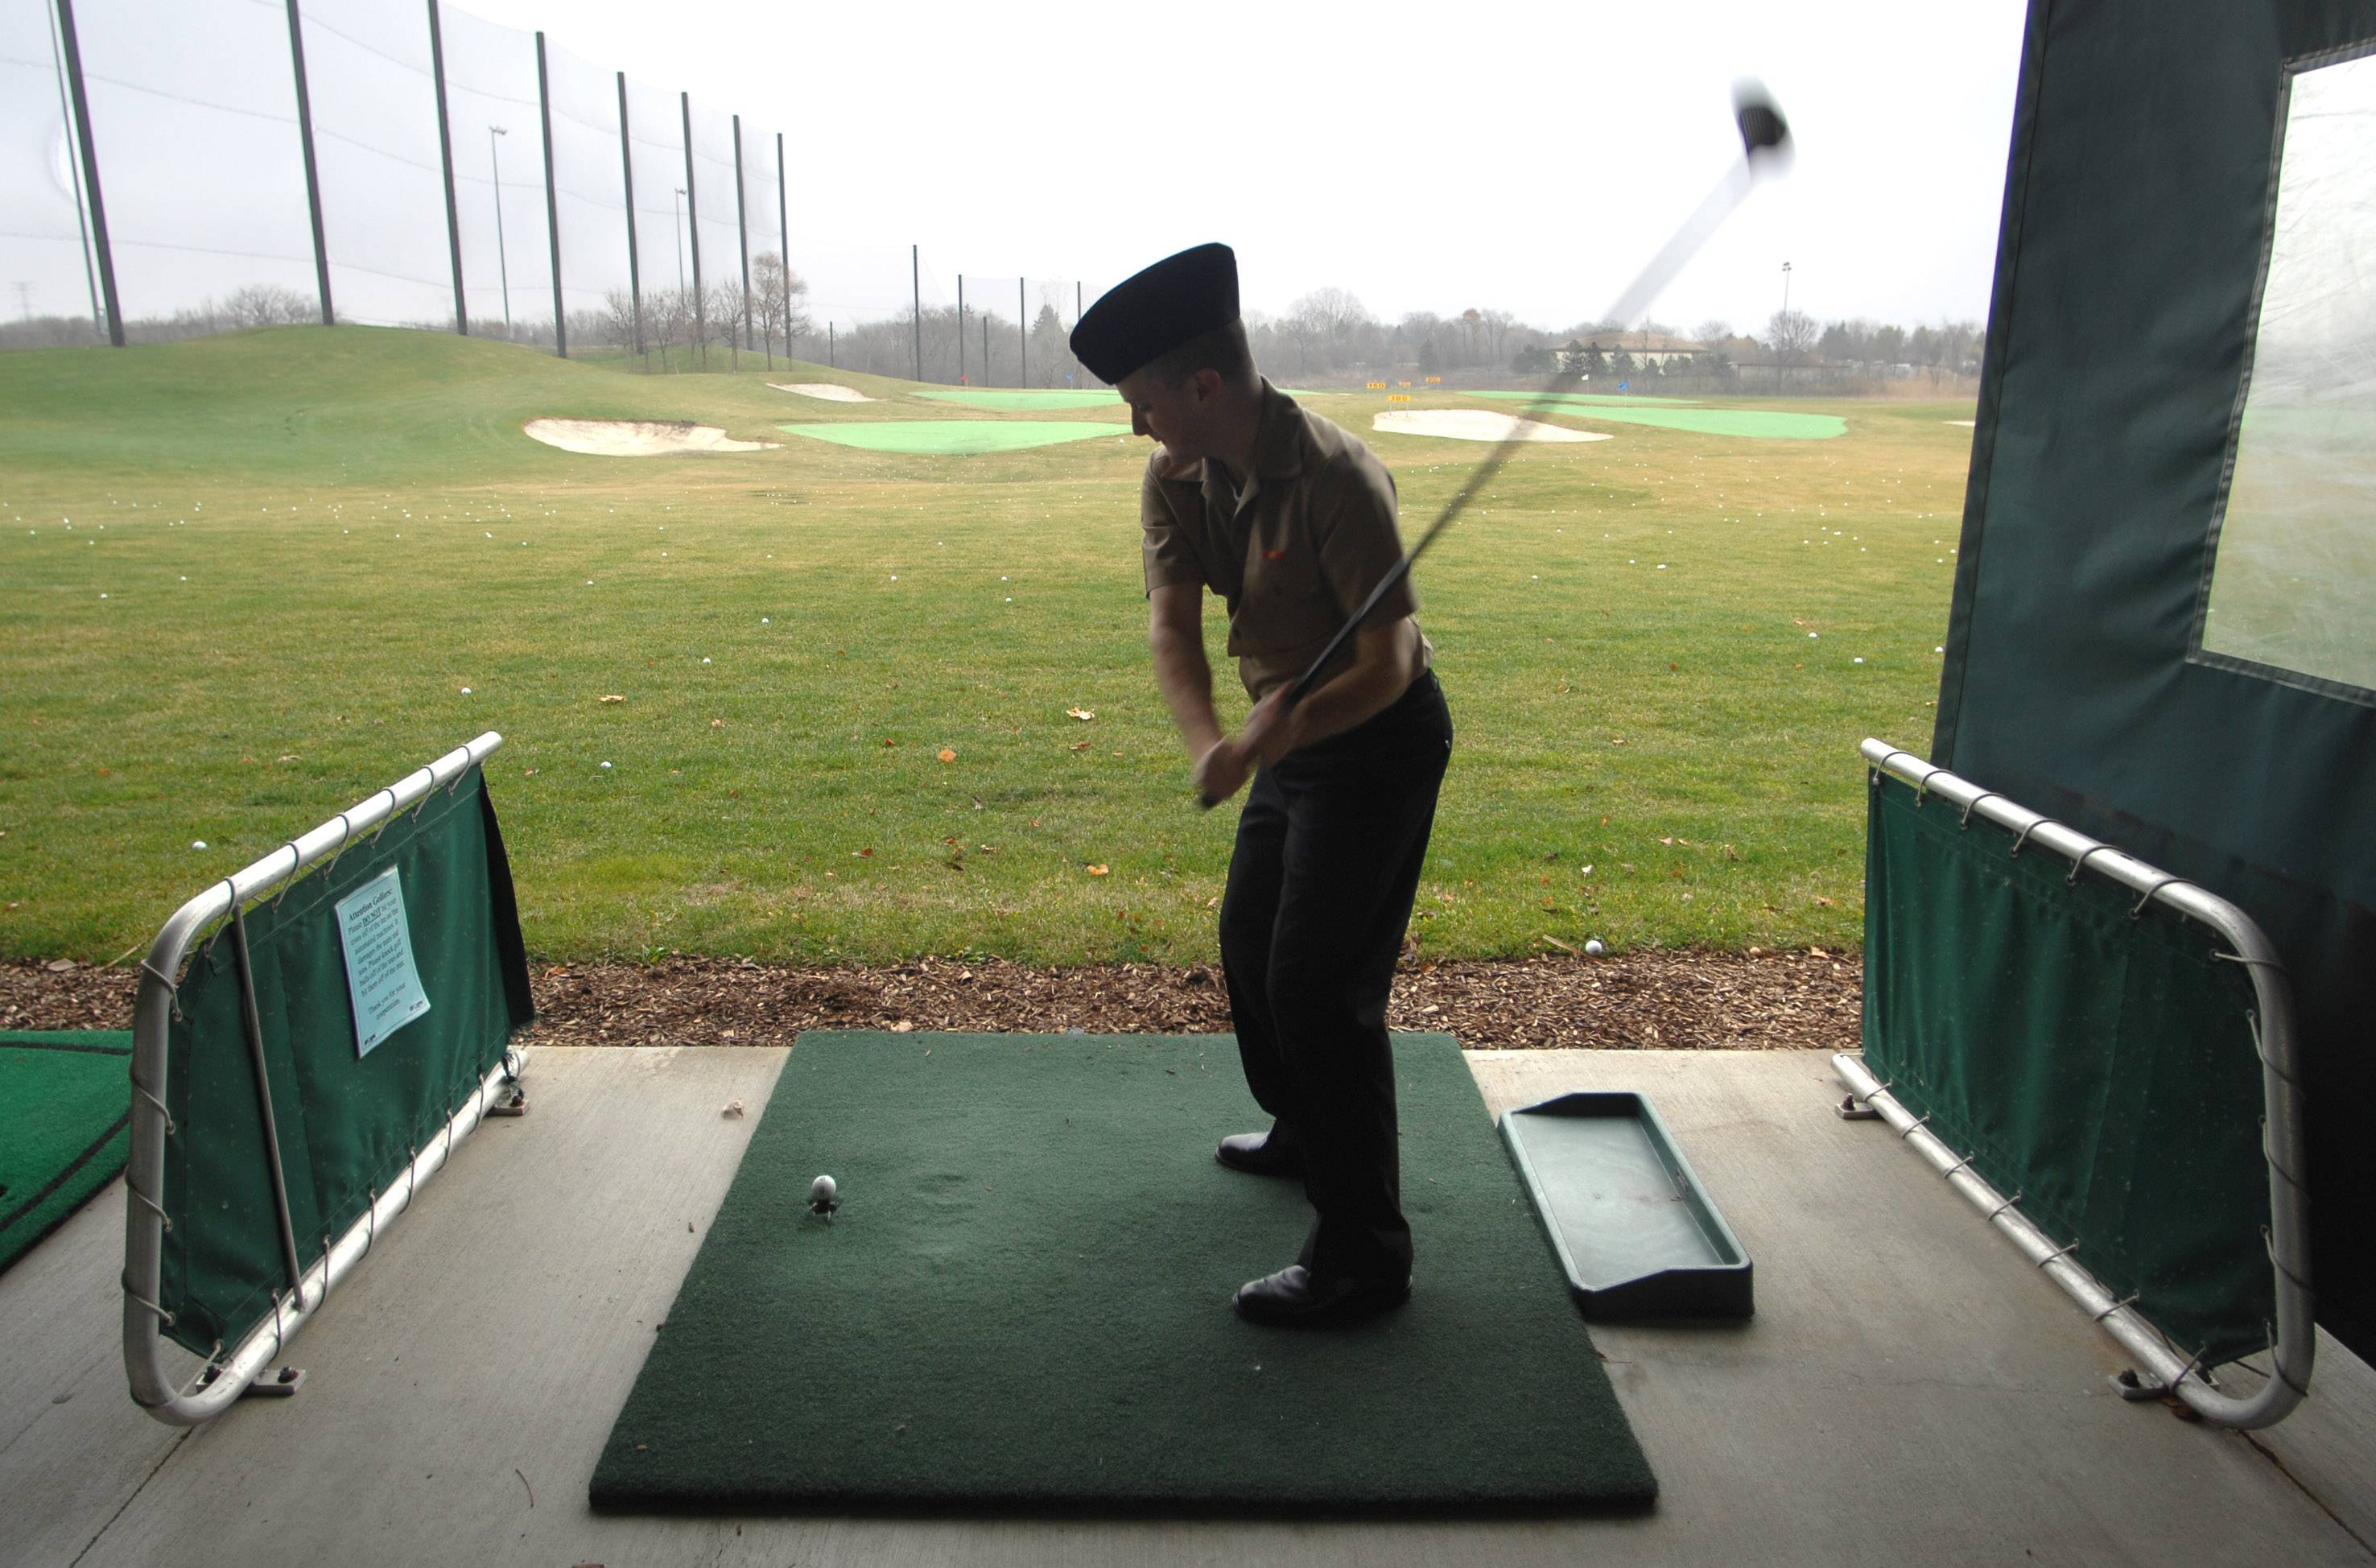 The driving range at the Libertyville Sports Complex is among the elements owned by the village of Libertyville that have been for sale.